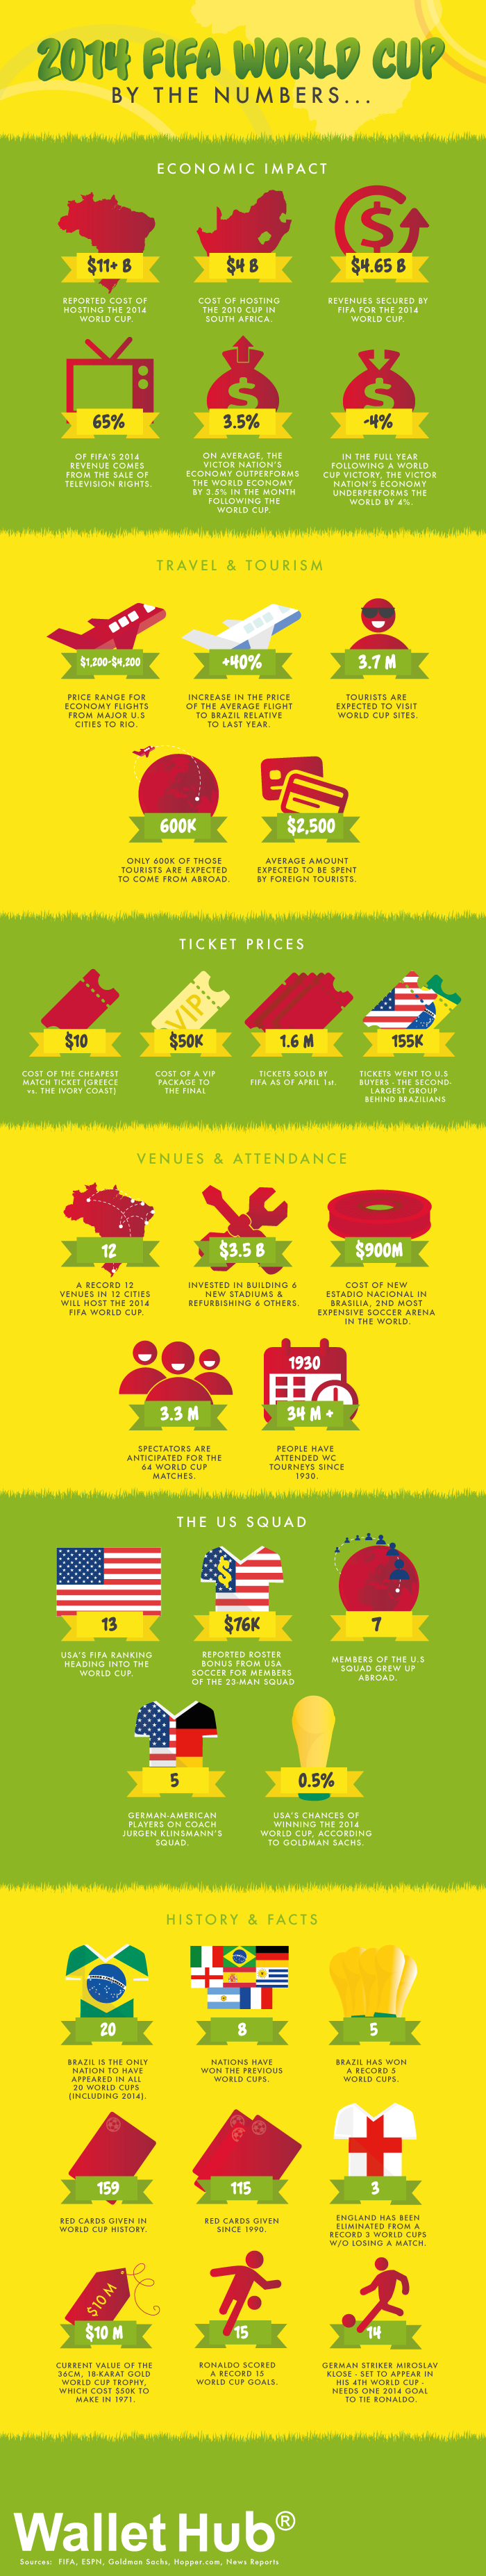 WalletHub FIFA World Cup 2014 by the Numbers Infographic